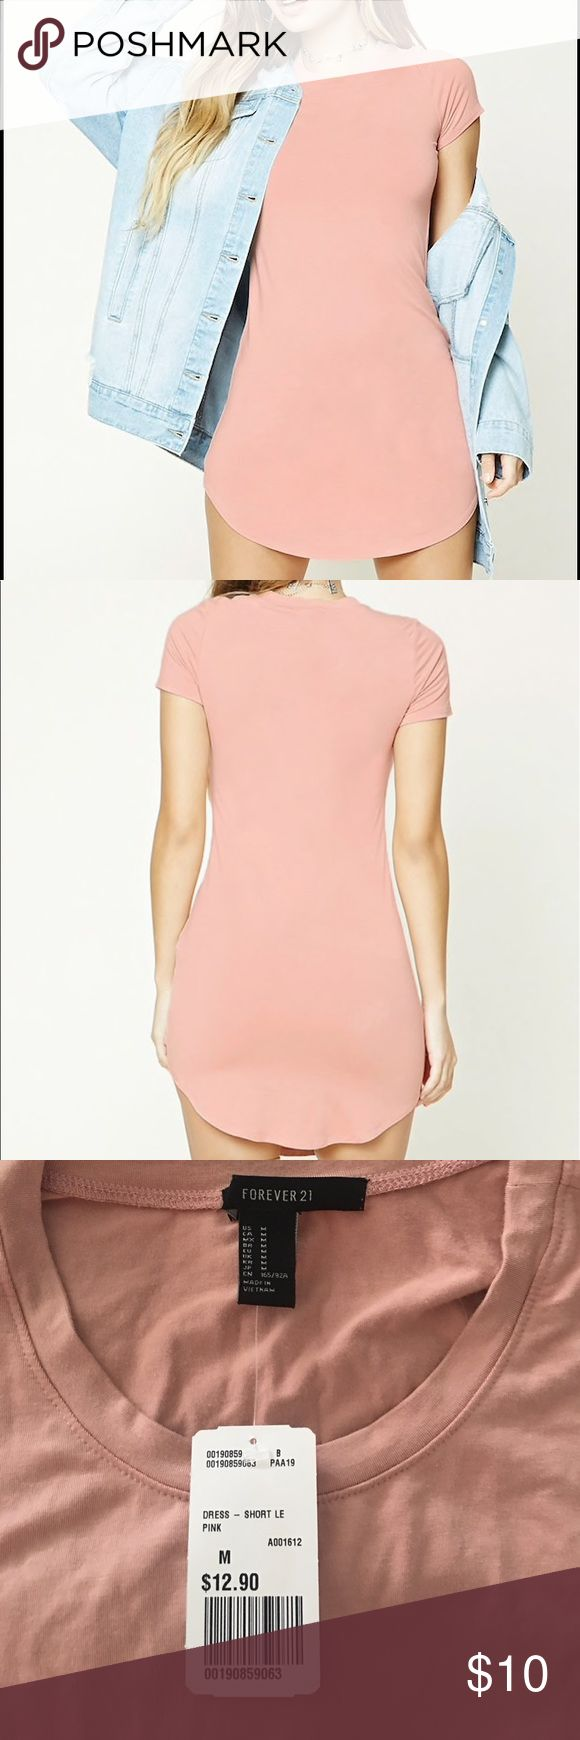 NWT Forever21 Dusty Pink Knit Mini Dress Forever21 Dusty Pink Knit Mini Dress - curved hemline - tried on and just not for me. Brand new with tags! Forever 21 Dresses Mini